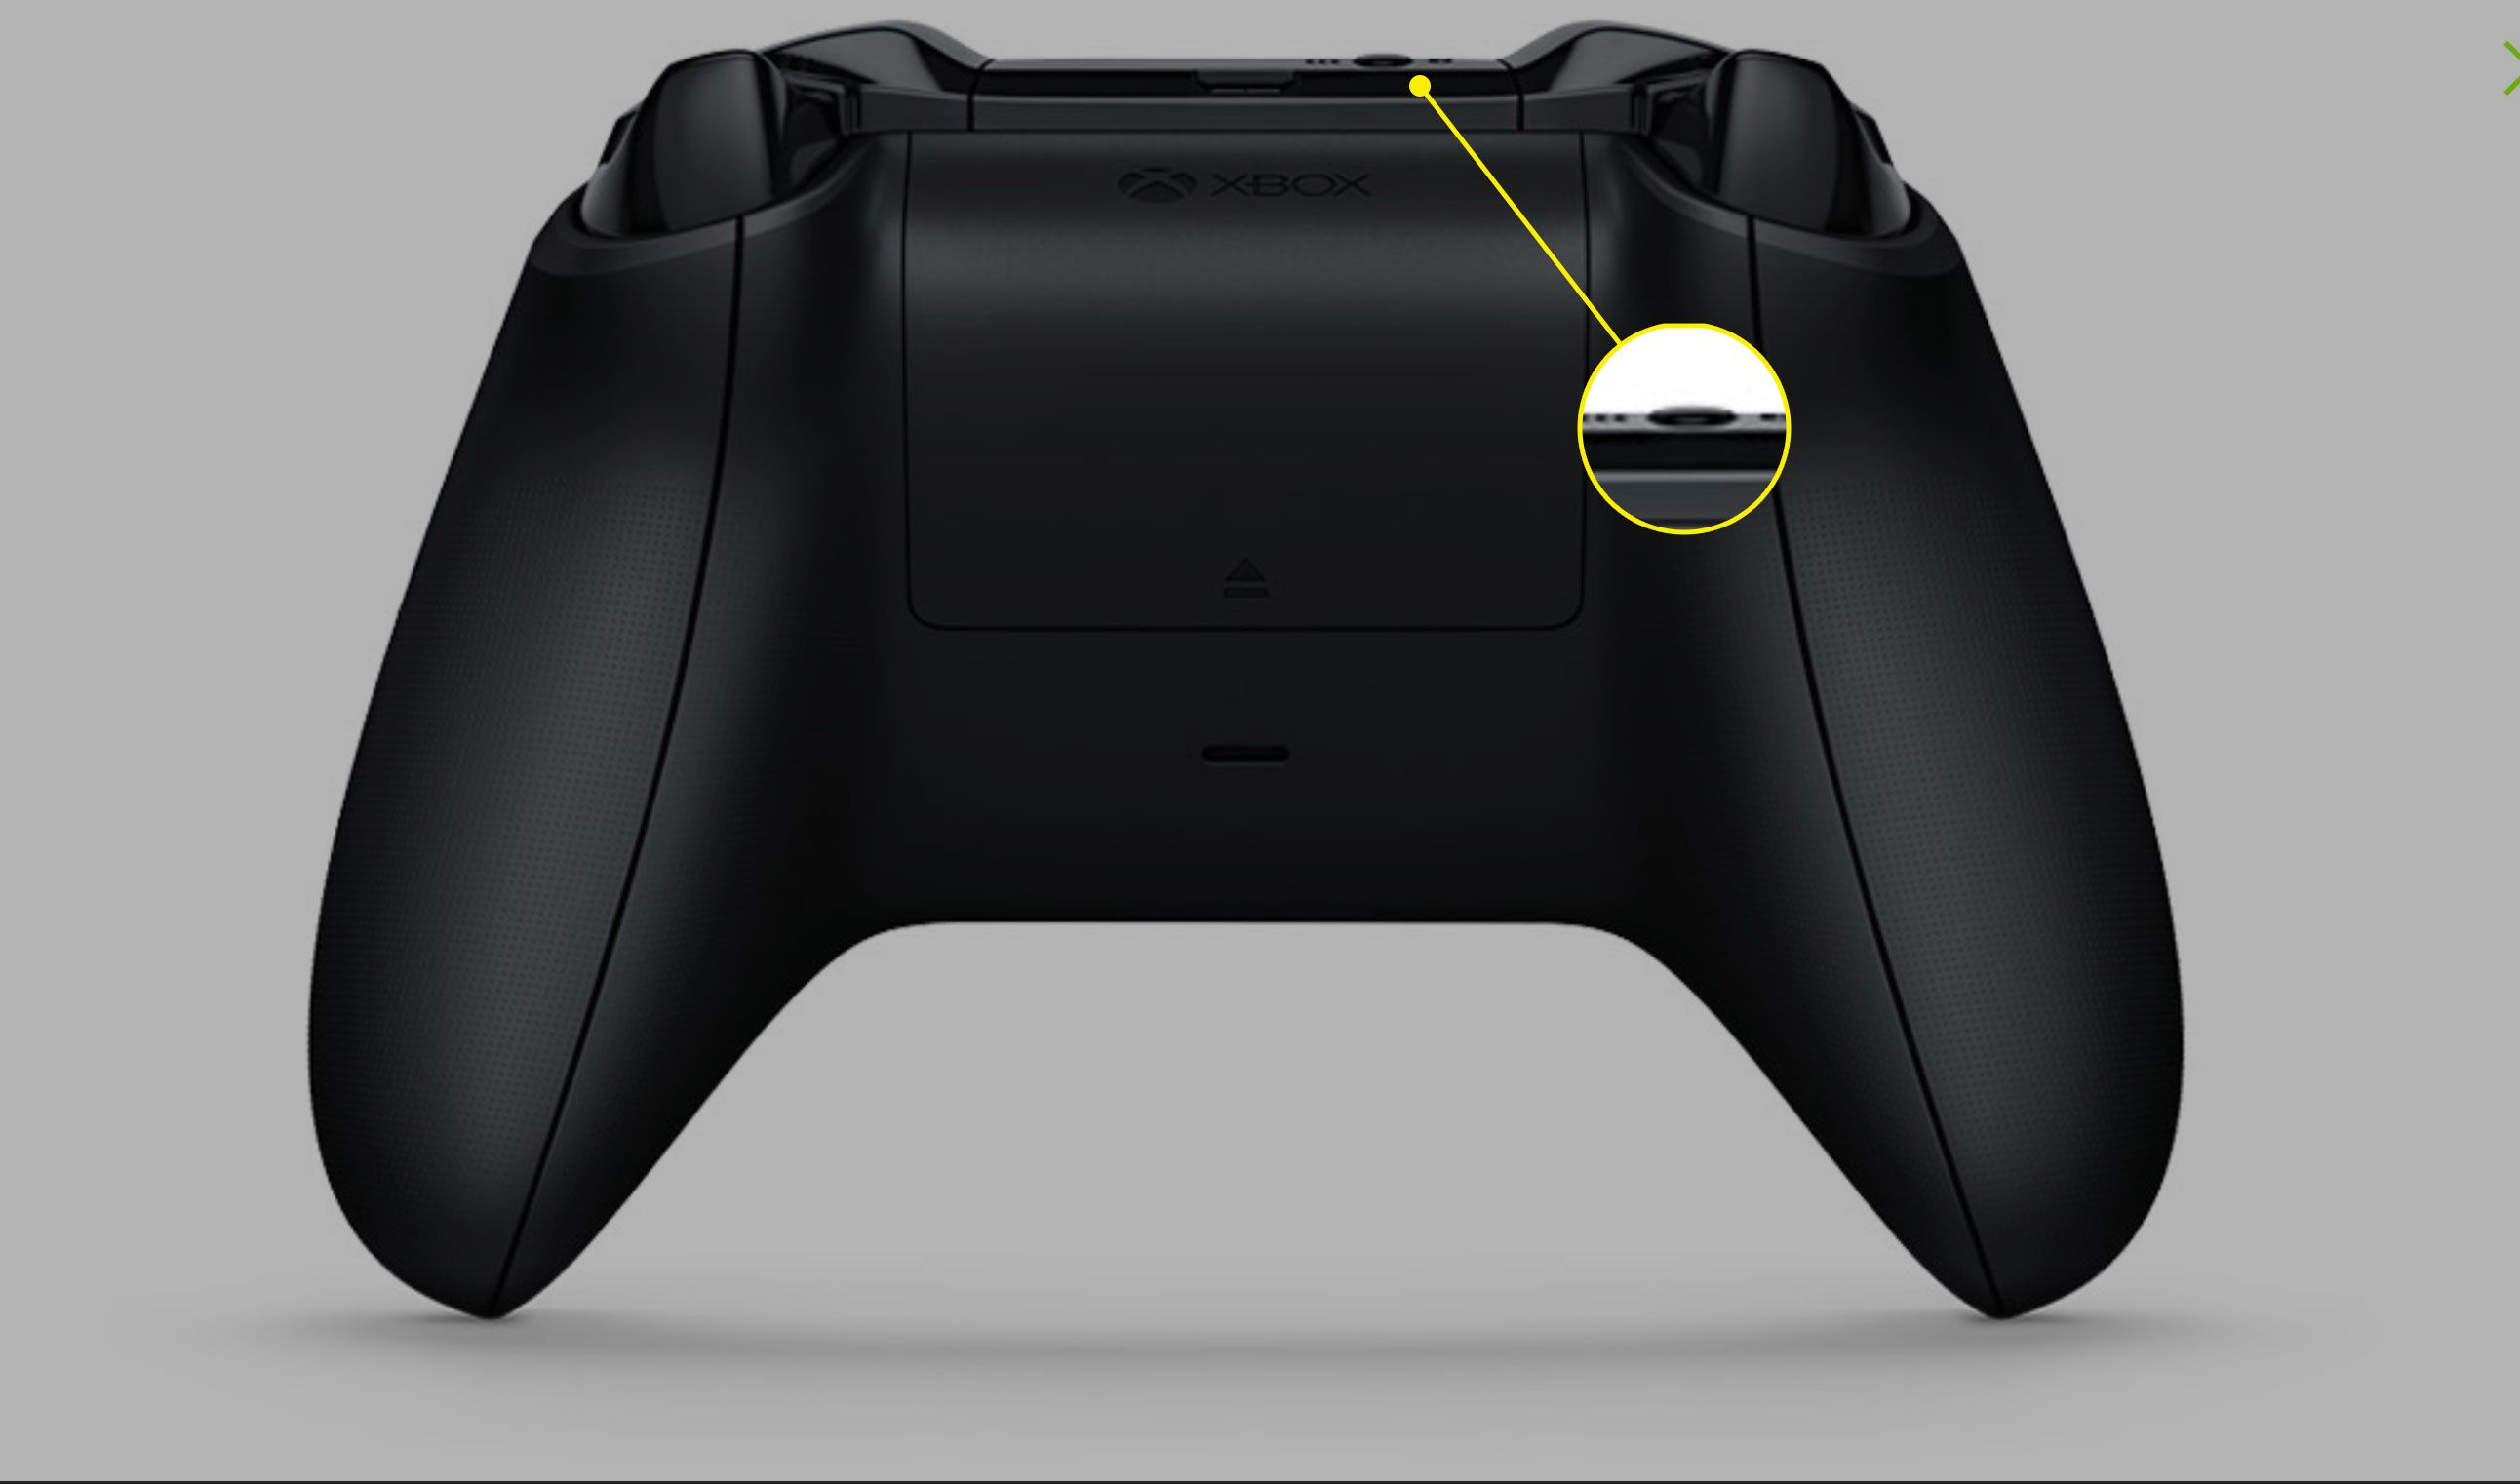 The Sync button on an Xbox One controller